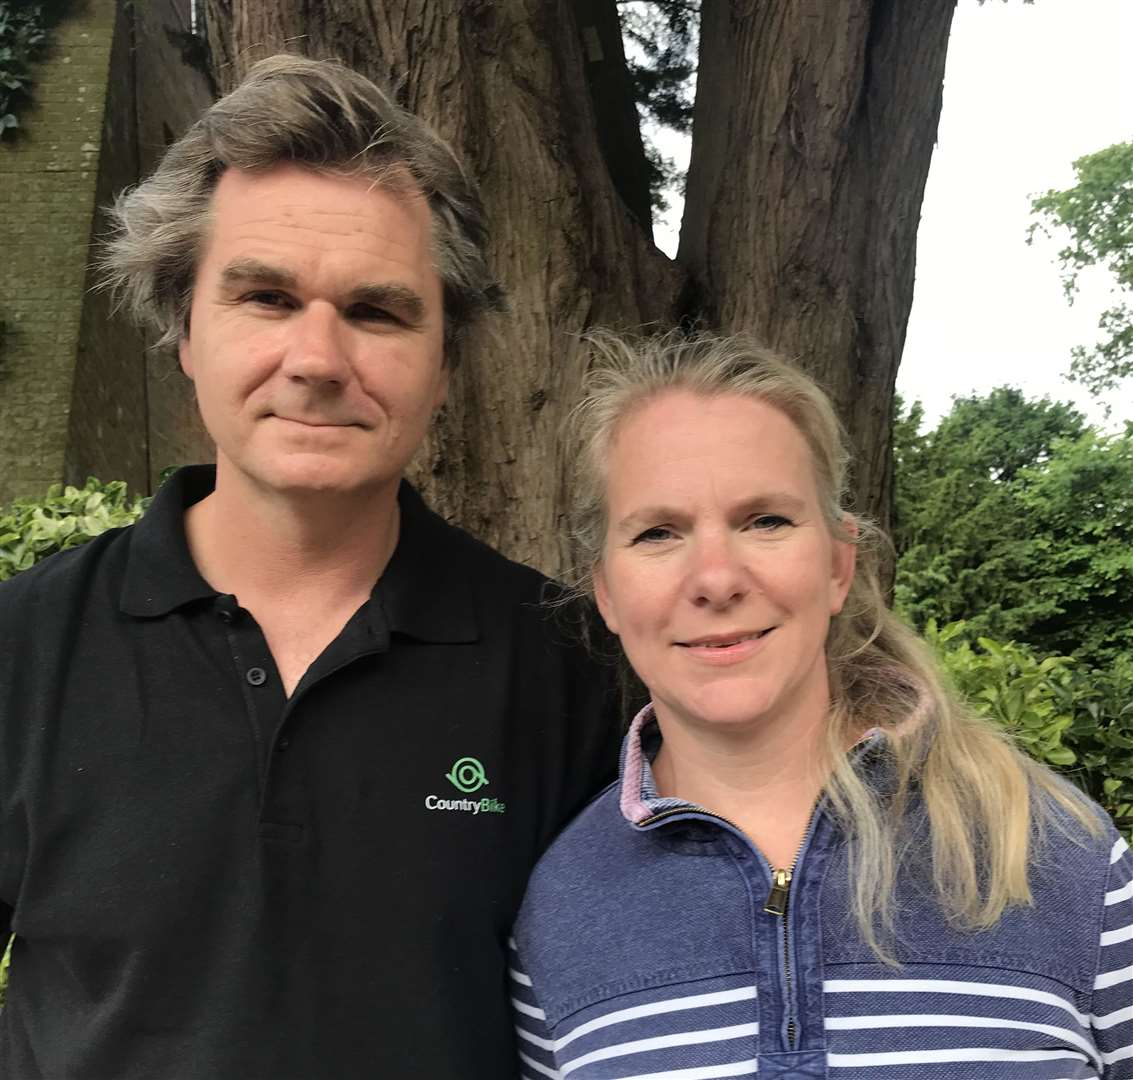 Tim and Suzy Seddon, the owners of CountryBike